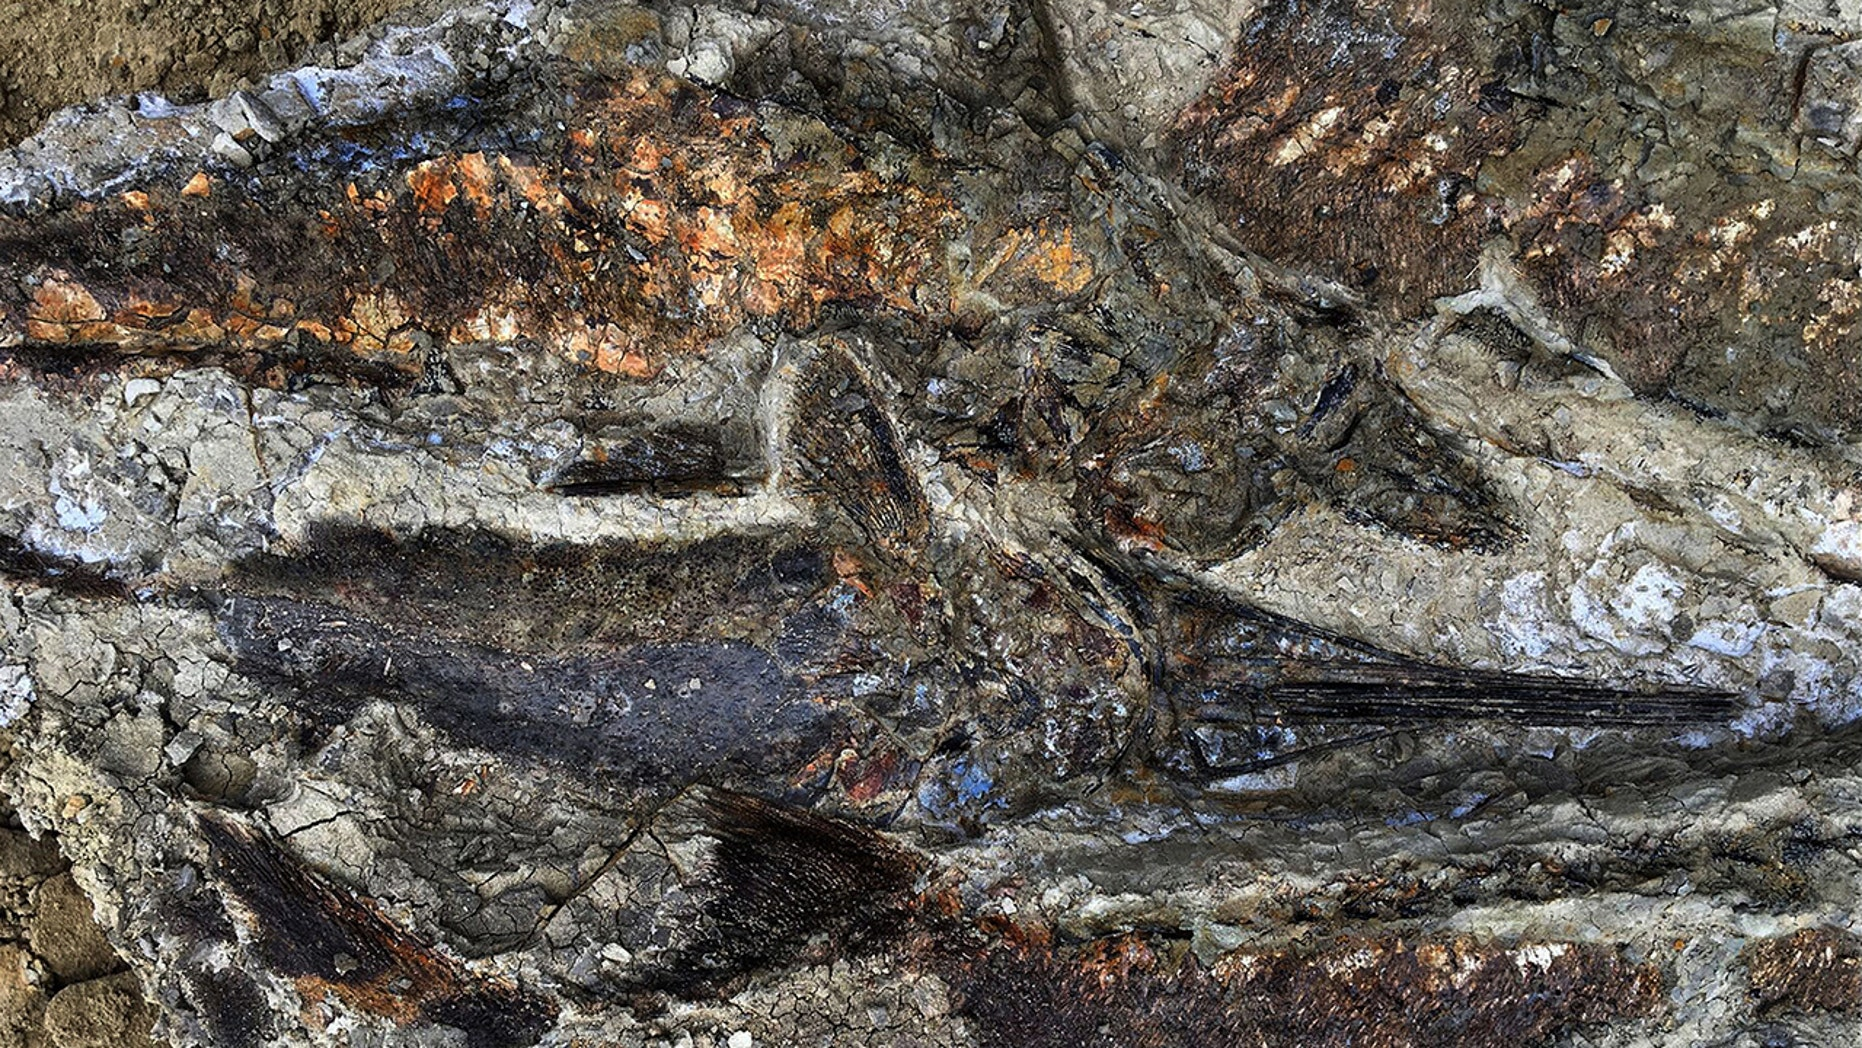 This handout photo obtained March 30, 2019 courtesy the University of Kansas shows a partially exposed, perfectly preserved 66-million-year-old fish fossil uncovered by Robert DePalma and his colleagues. -(Credit: ROBERT DEPALMA/AFP/Getty Images)